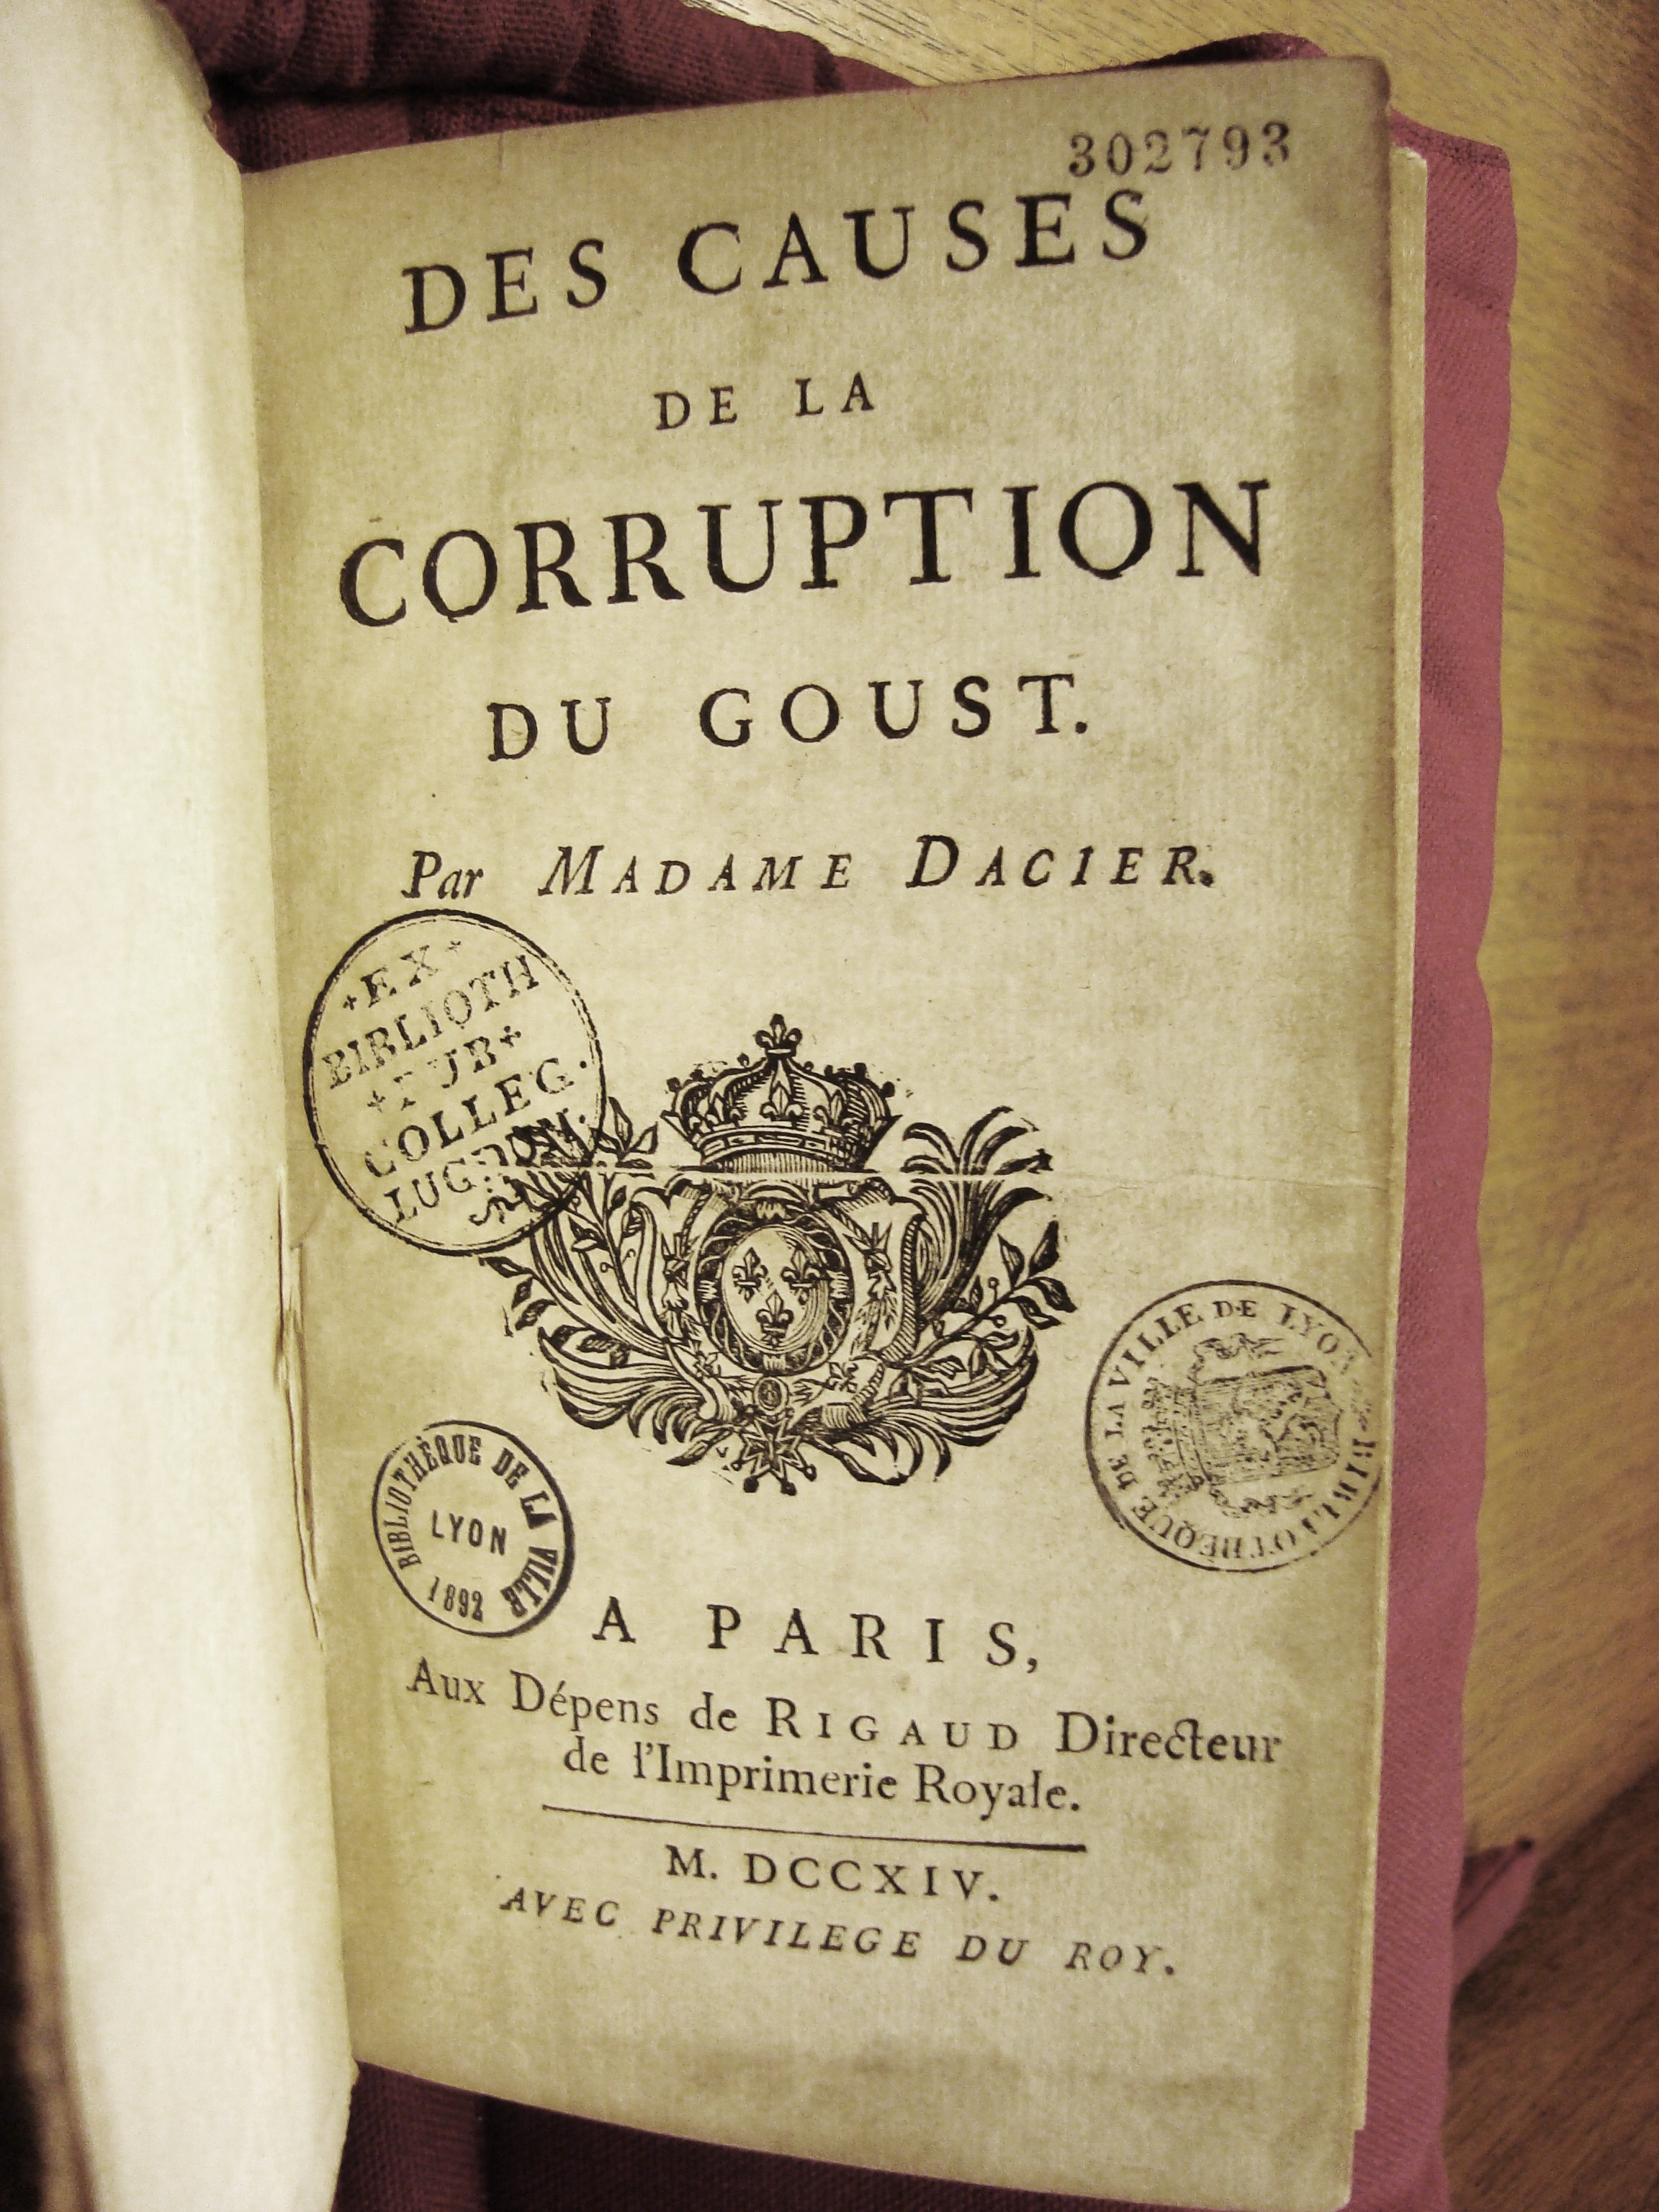 23 Des Causes de la corruption du goust, Paris, 1714